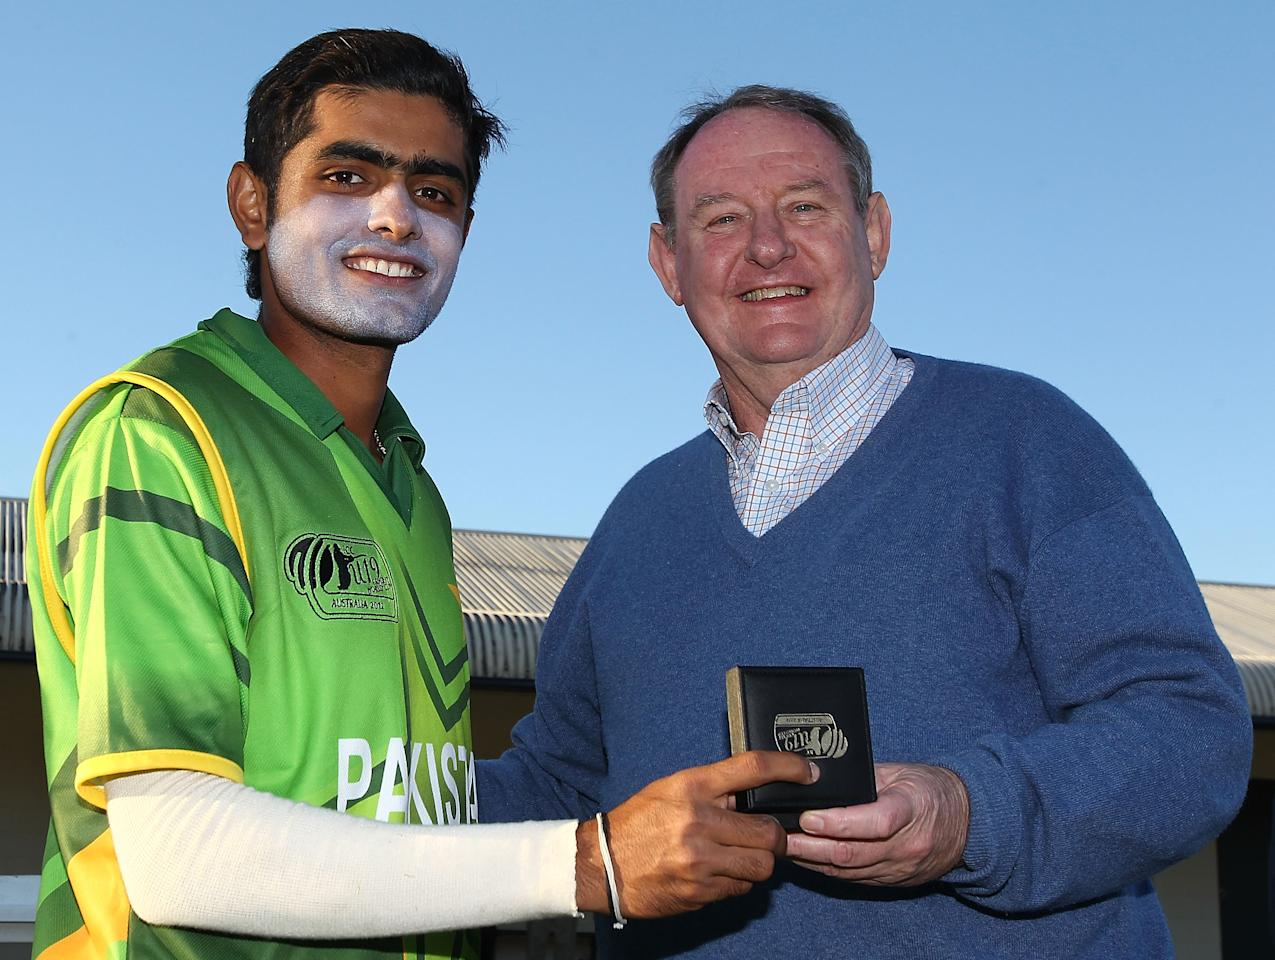 SUNSHINE COAST, AUSTRALIA - AUGUST 11:  Muhammad Babar Azam of Pakistan (L) is presented with the Man of the Match award following the ICC U19 Cricket World Cup 2012 match between Pakistan and Afghanistan at John Blanck Oval on August 11, 2012 in Sunshine Coast, Australia.  (Photo by Graham Denholm-ICC/Getty Images)